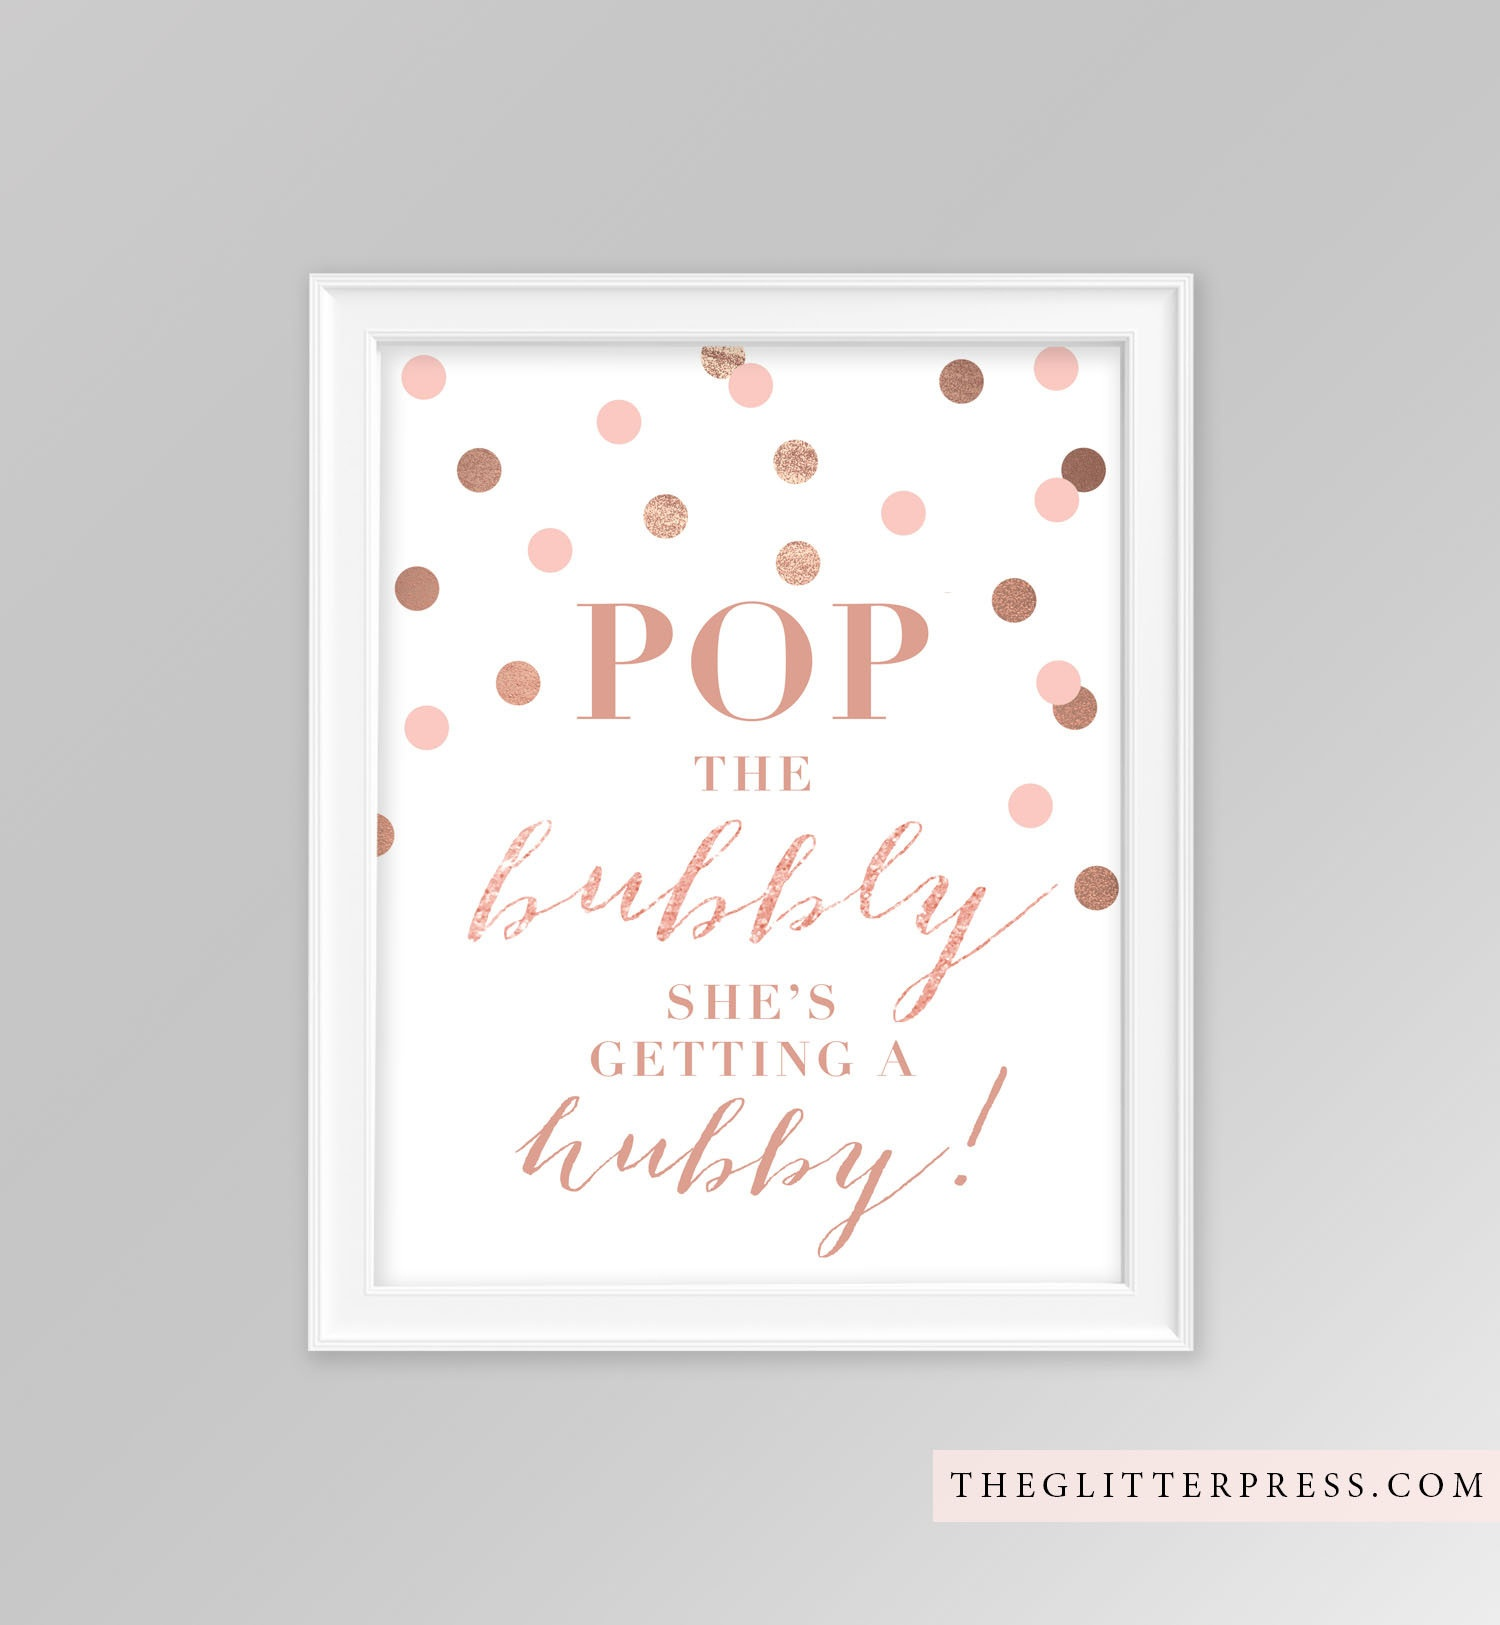 Pop The Bubbly She's Getting A Hubby 8X10 Printable Sign | Etsy - Pop The Bubbly She's Getting A Hubby Free Printable